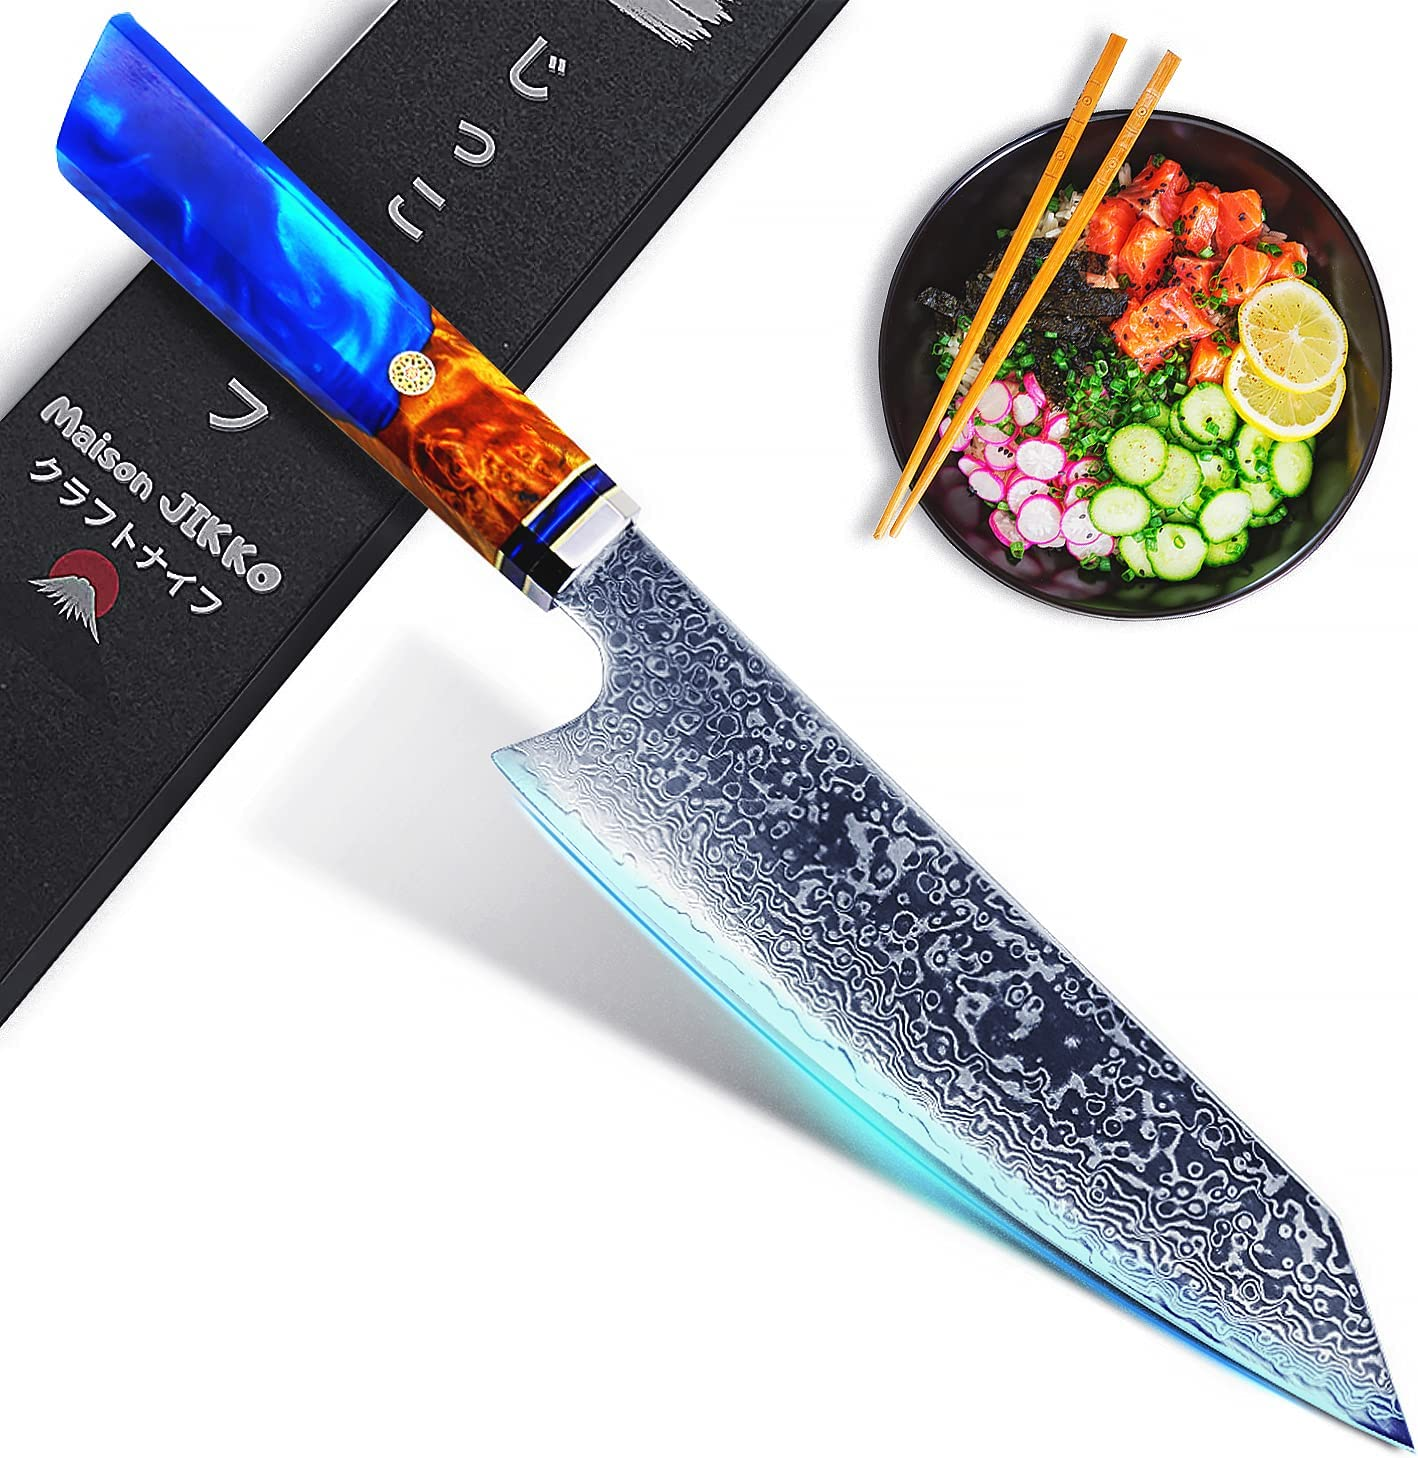 Jikko New Premium Japanese Kitchen Ranking TOP6 Knife Damascus Inch with Super popular specialty store 13